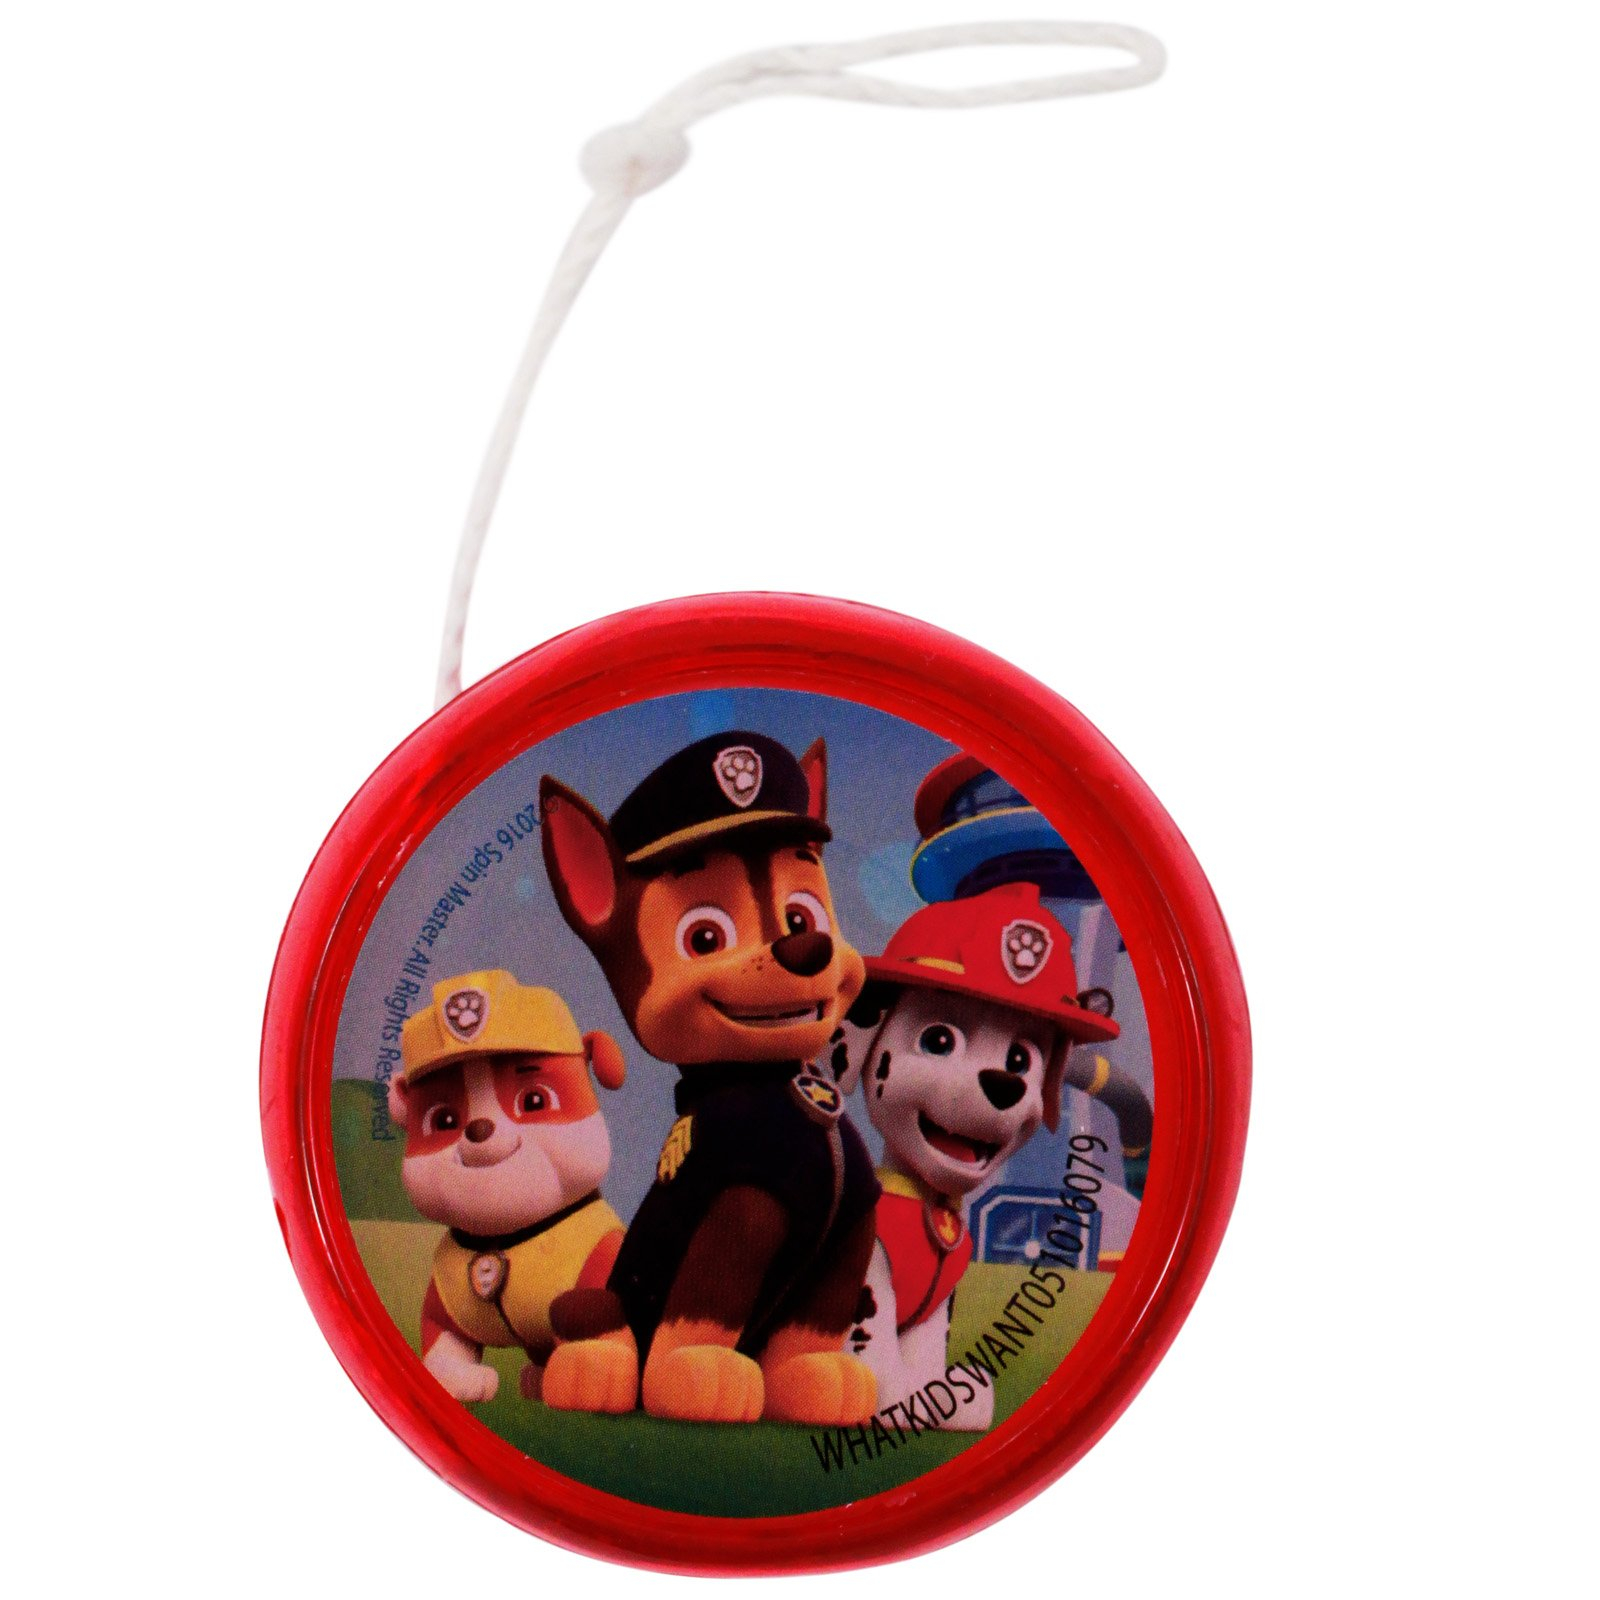 Officially Licensed Nickelodeon Paw Patrol LED Light Up Yo Yo Kids Toy